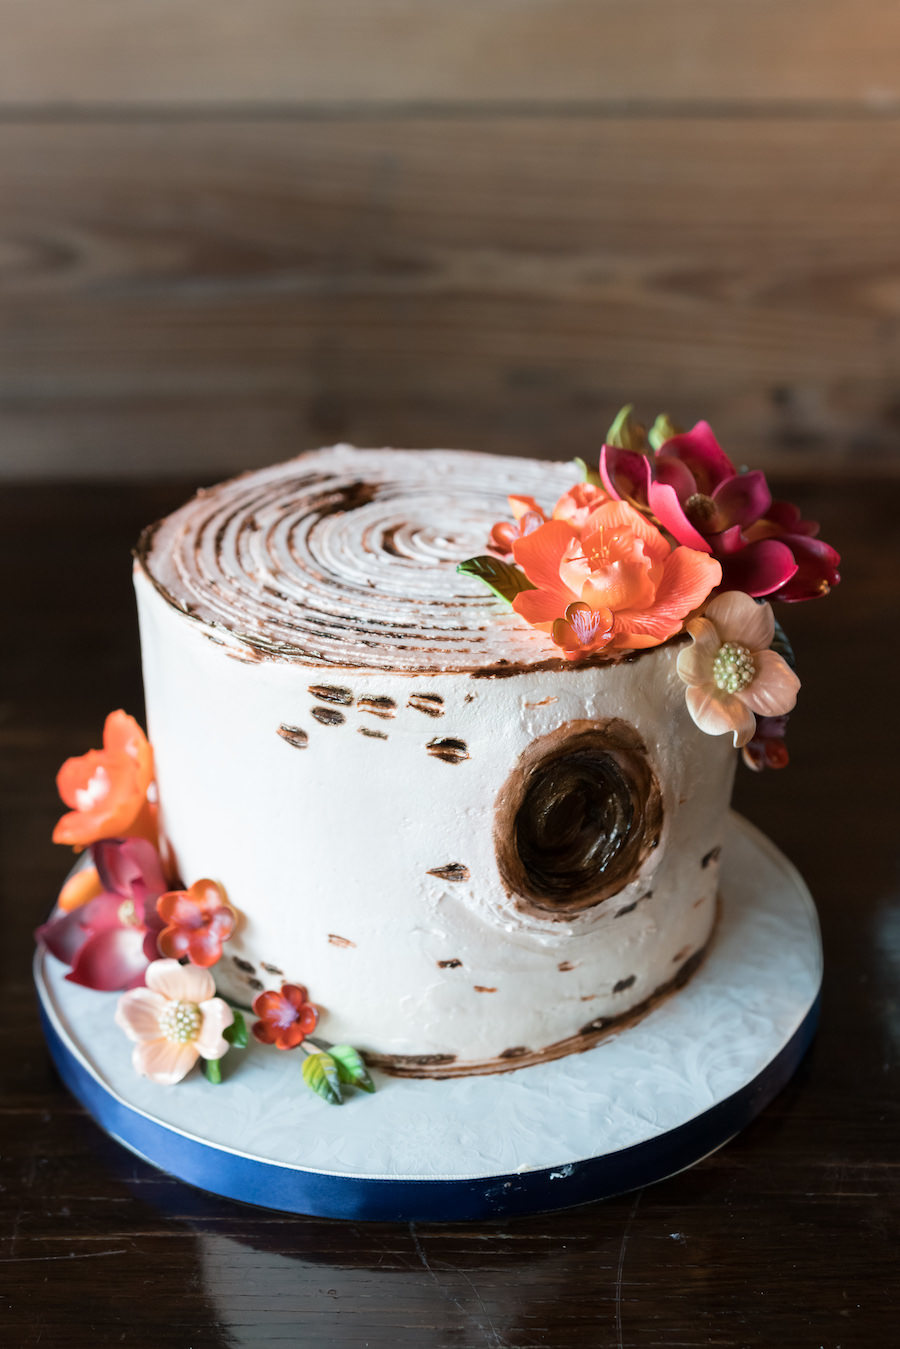 Wedding Dessert Table Ideas with Small Birchwood Wedding Cake with Sugar Flowers by Alessi Bakery